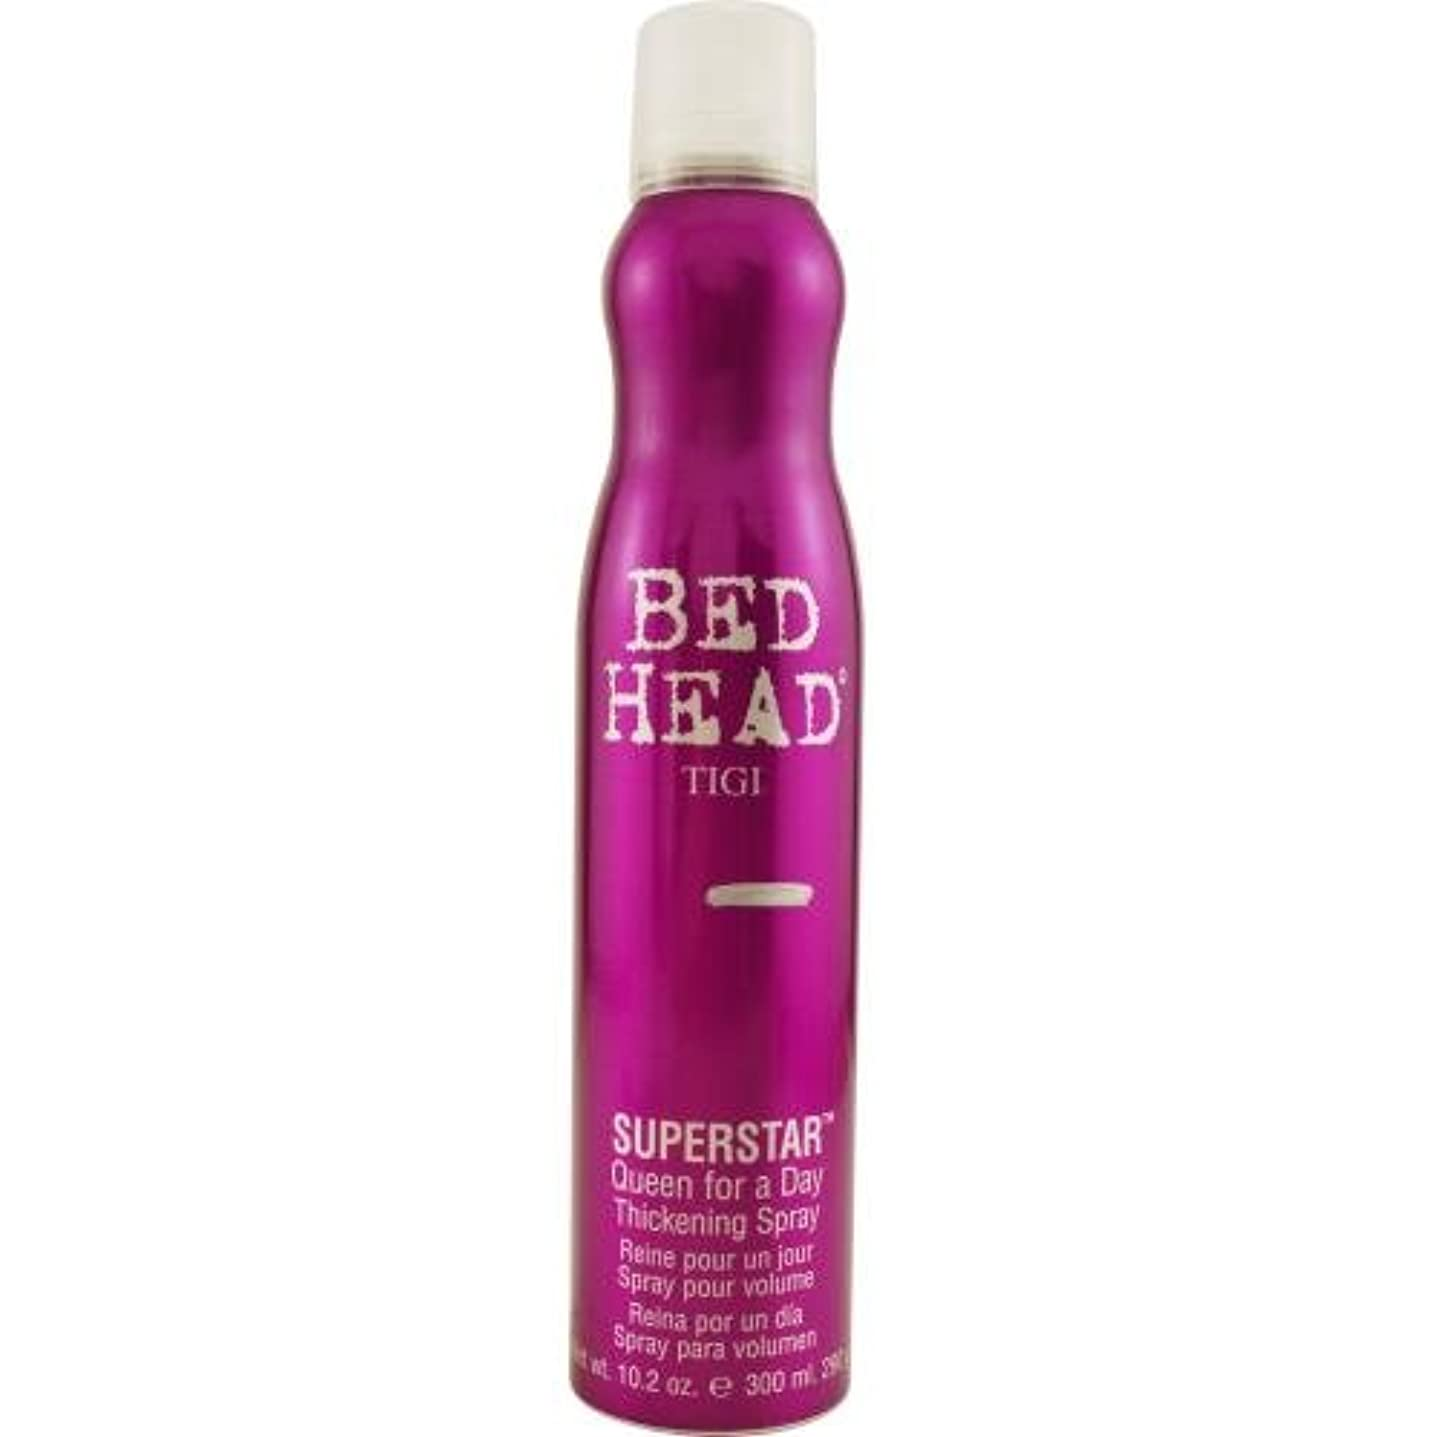 クリスマス率直な鏡Tigi Bedhead Superstar Queen For A Day Thickening Spray New